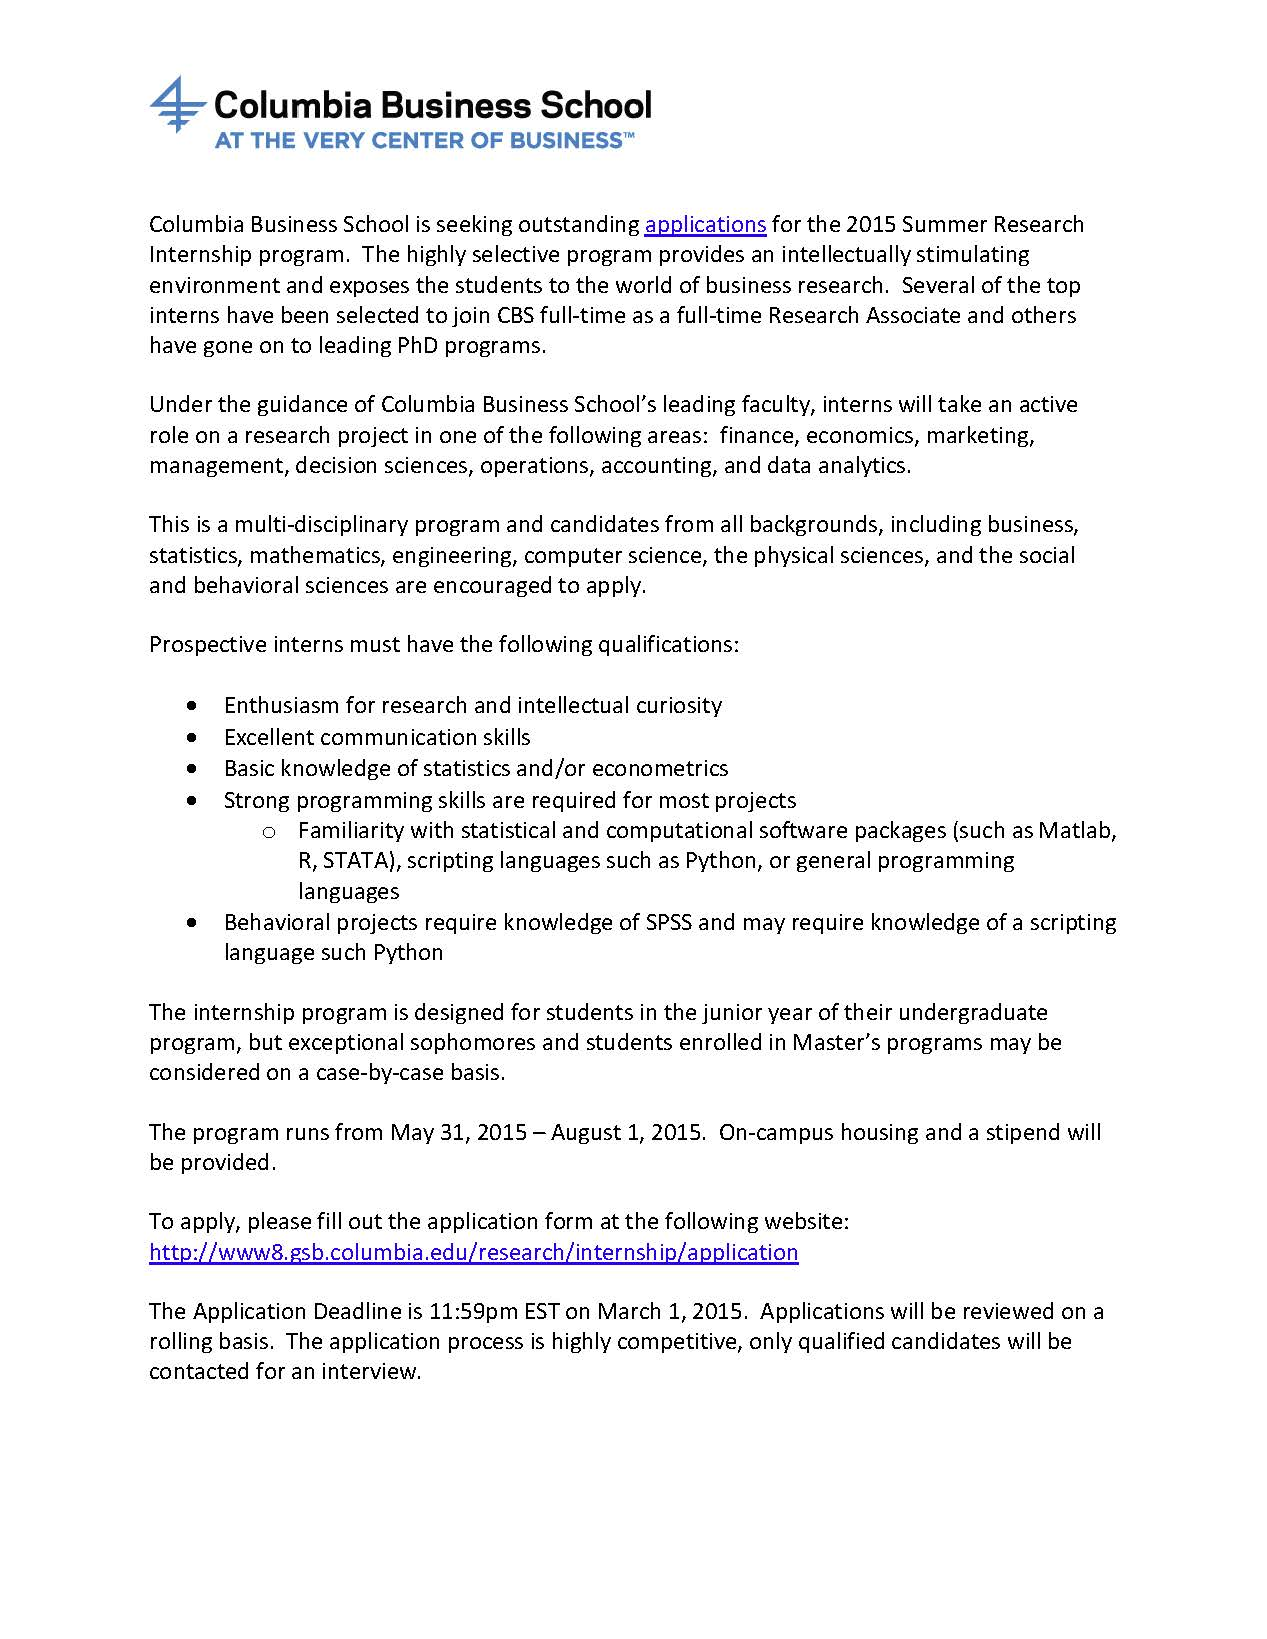 columbia business school summer research internship program columbia business school 2015 summer research internship program econugblog